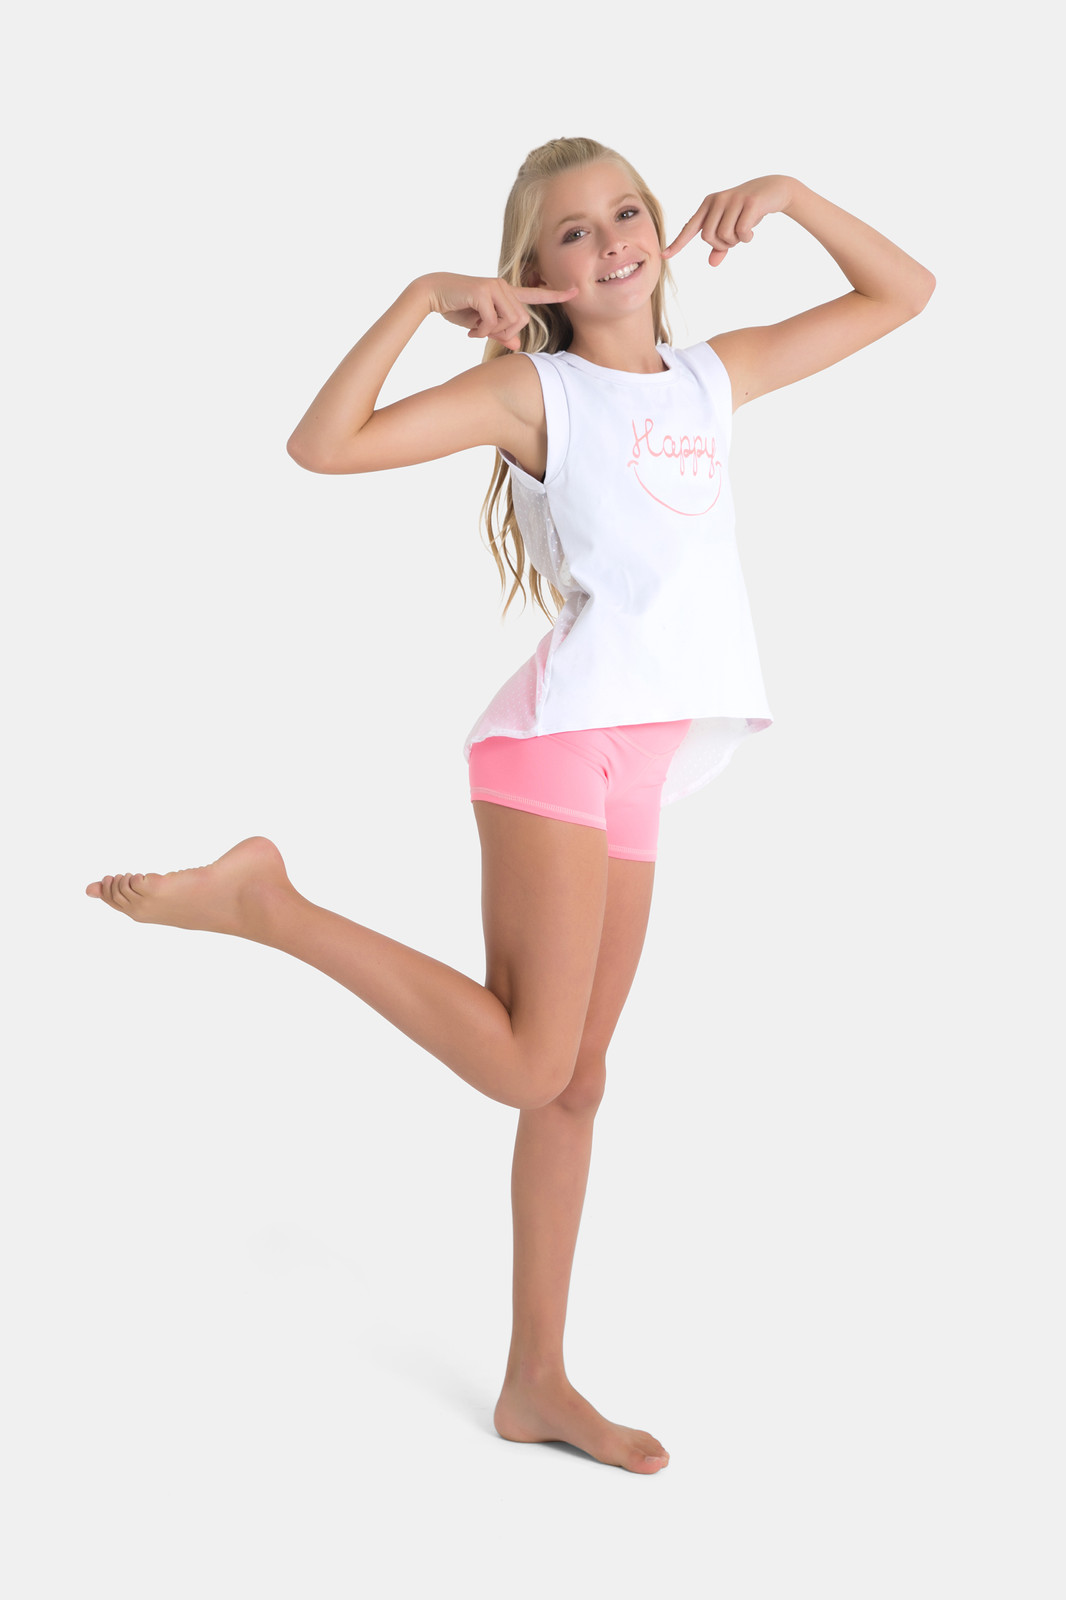 Happy Dance >> California Dreaming by Sylvia P | newdancezone